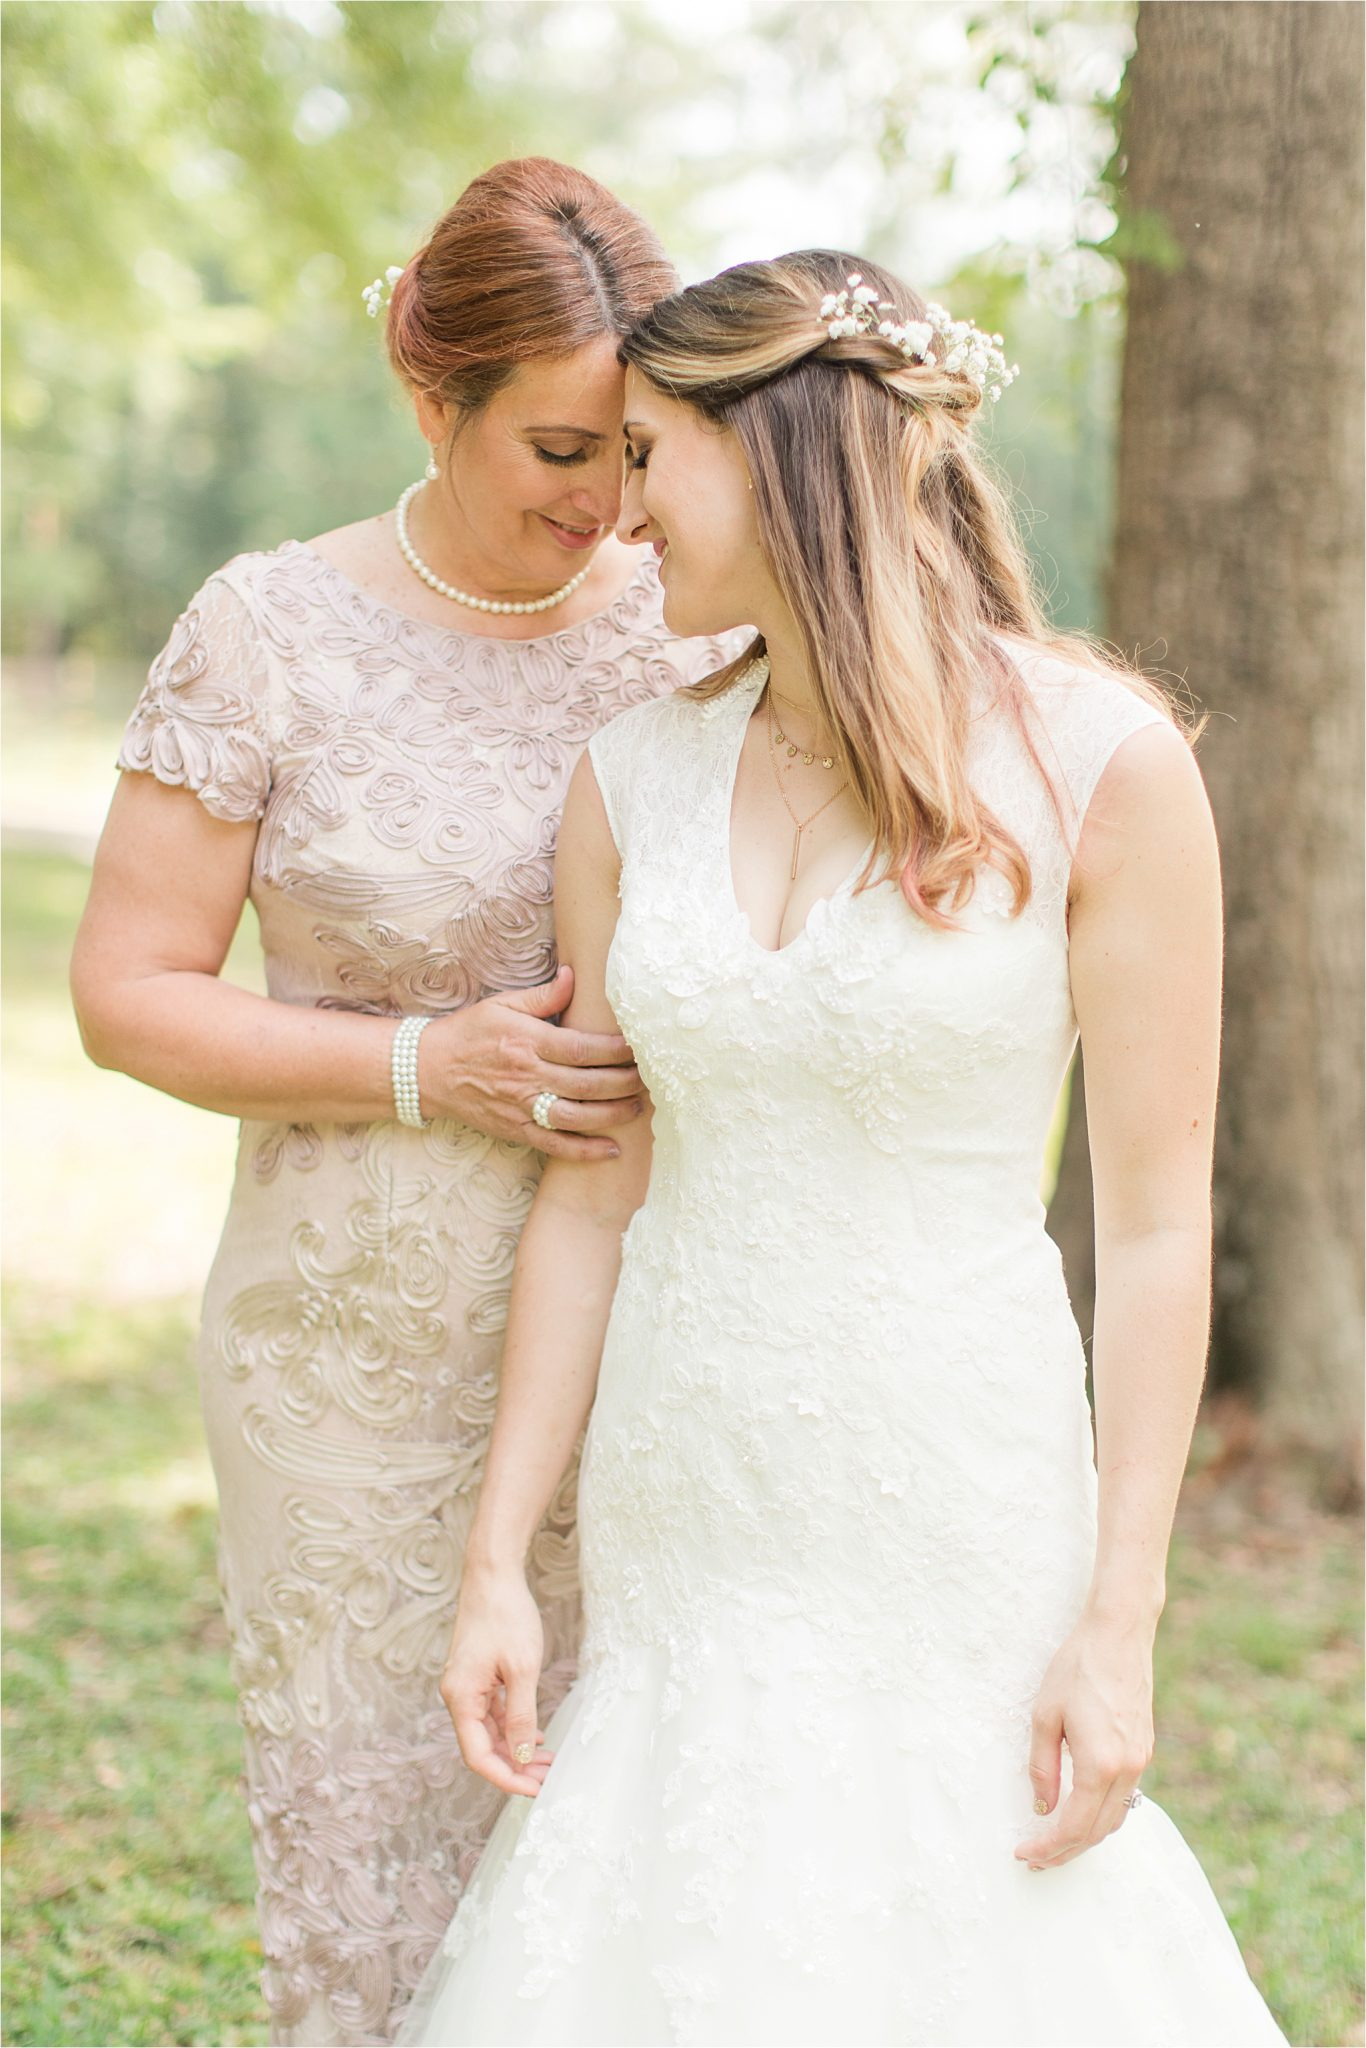 babies breath bridal crown-mother of the bride-blush dress-mermaid wedding gown with lace detailing